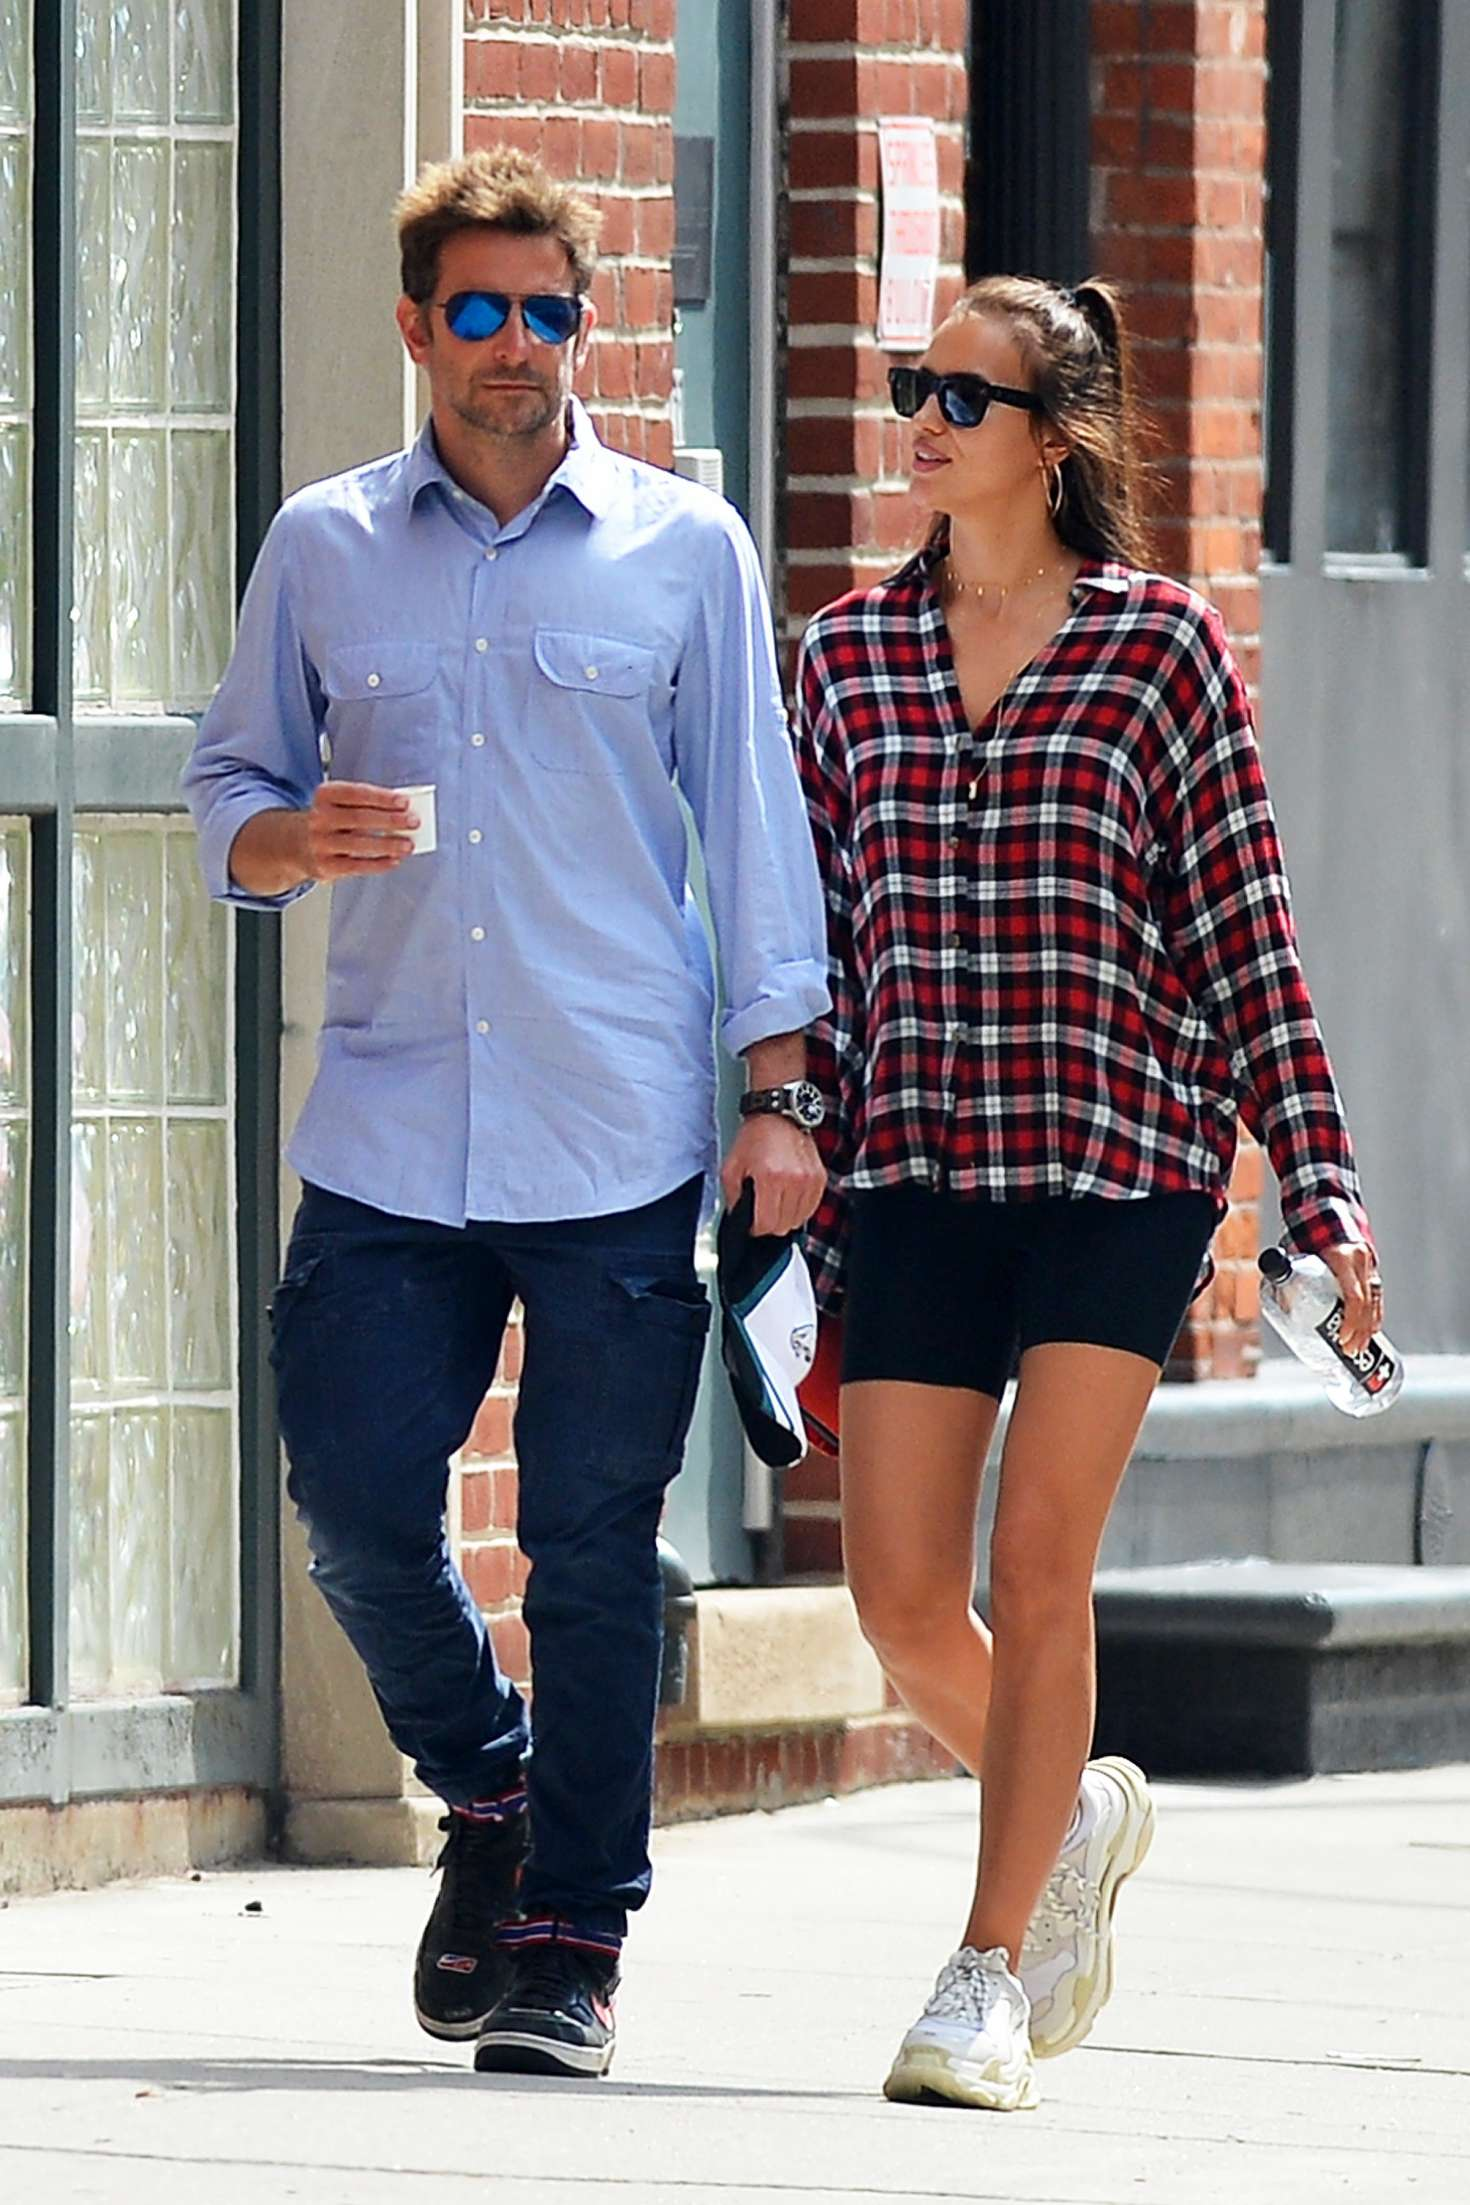 Bradley Cooper Shoe Size.Irina Shayk And Bradley Cooper Out In New York City 01